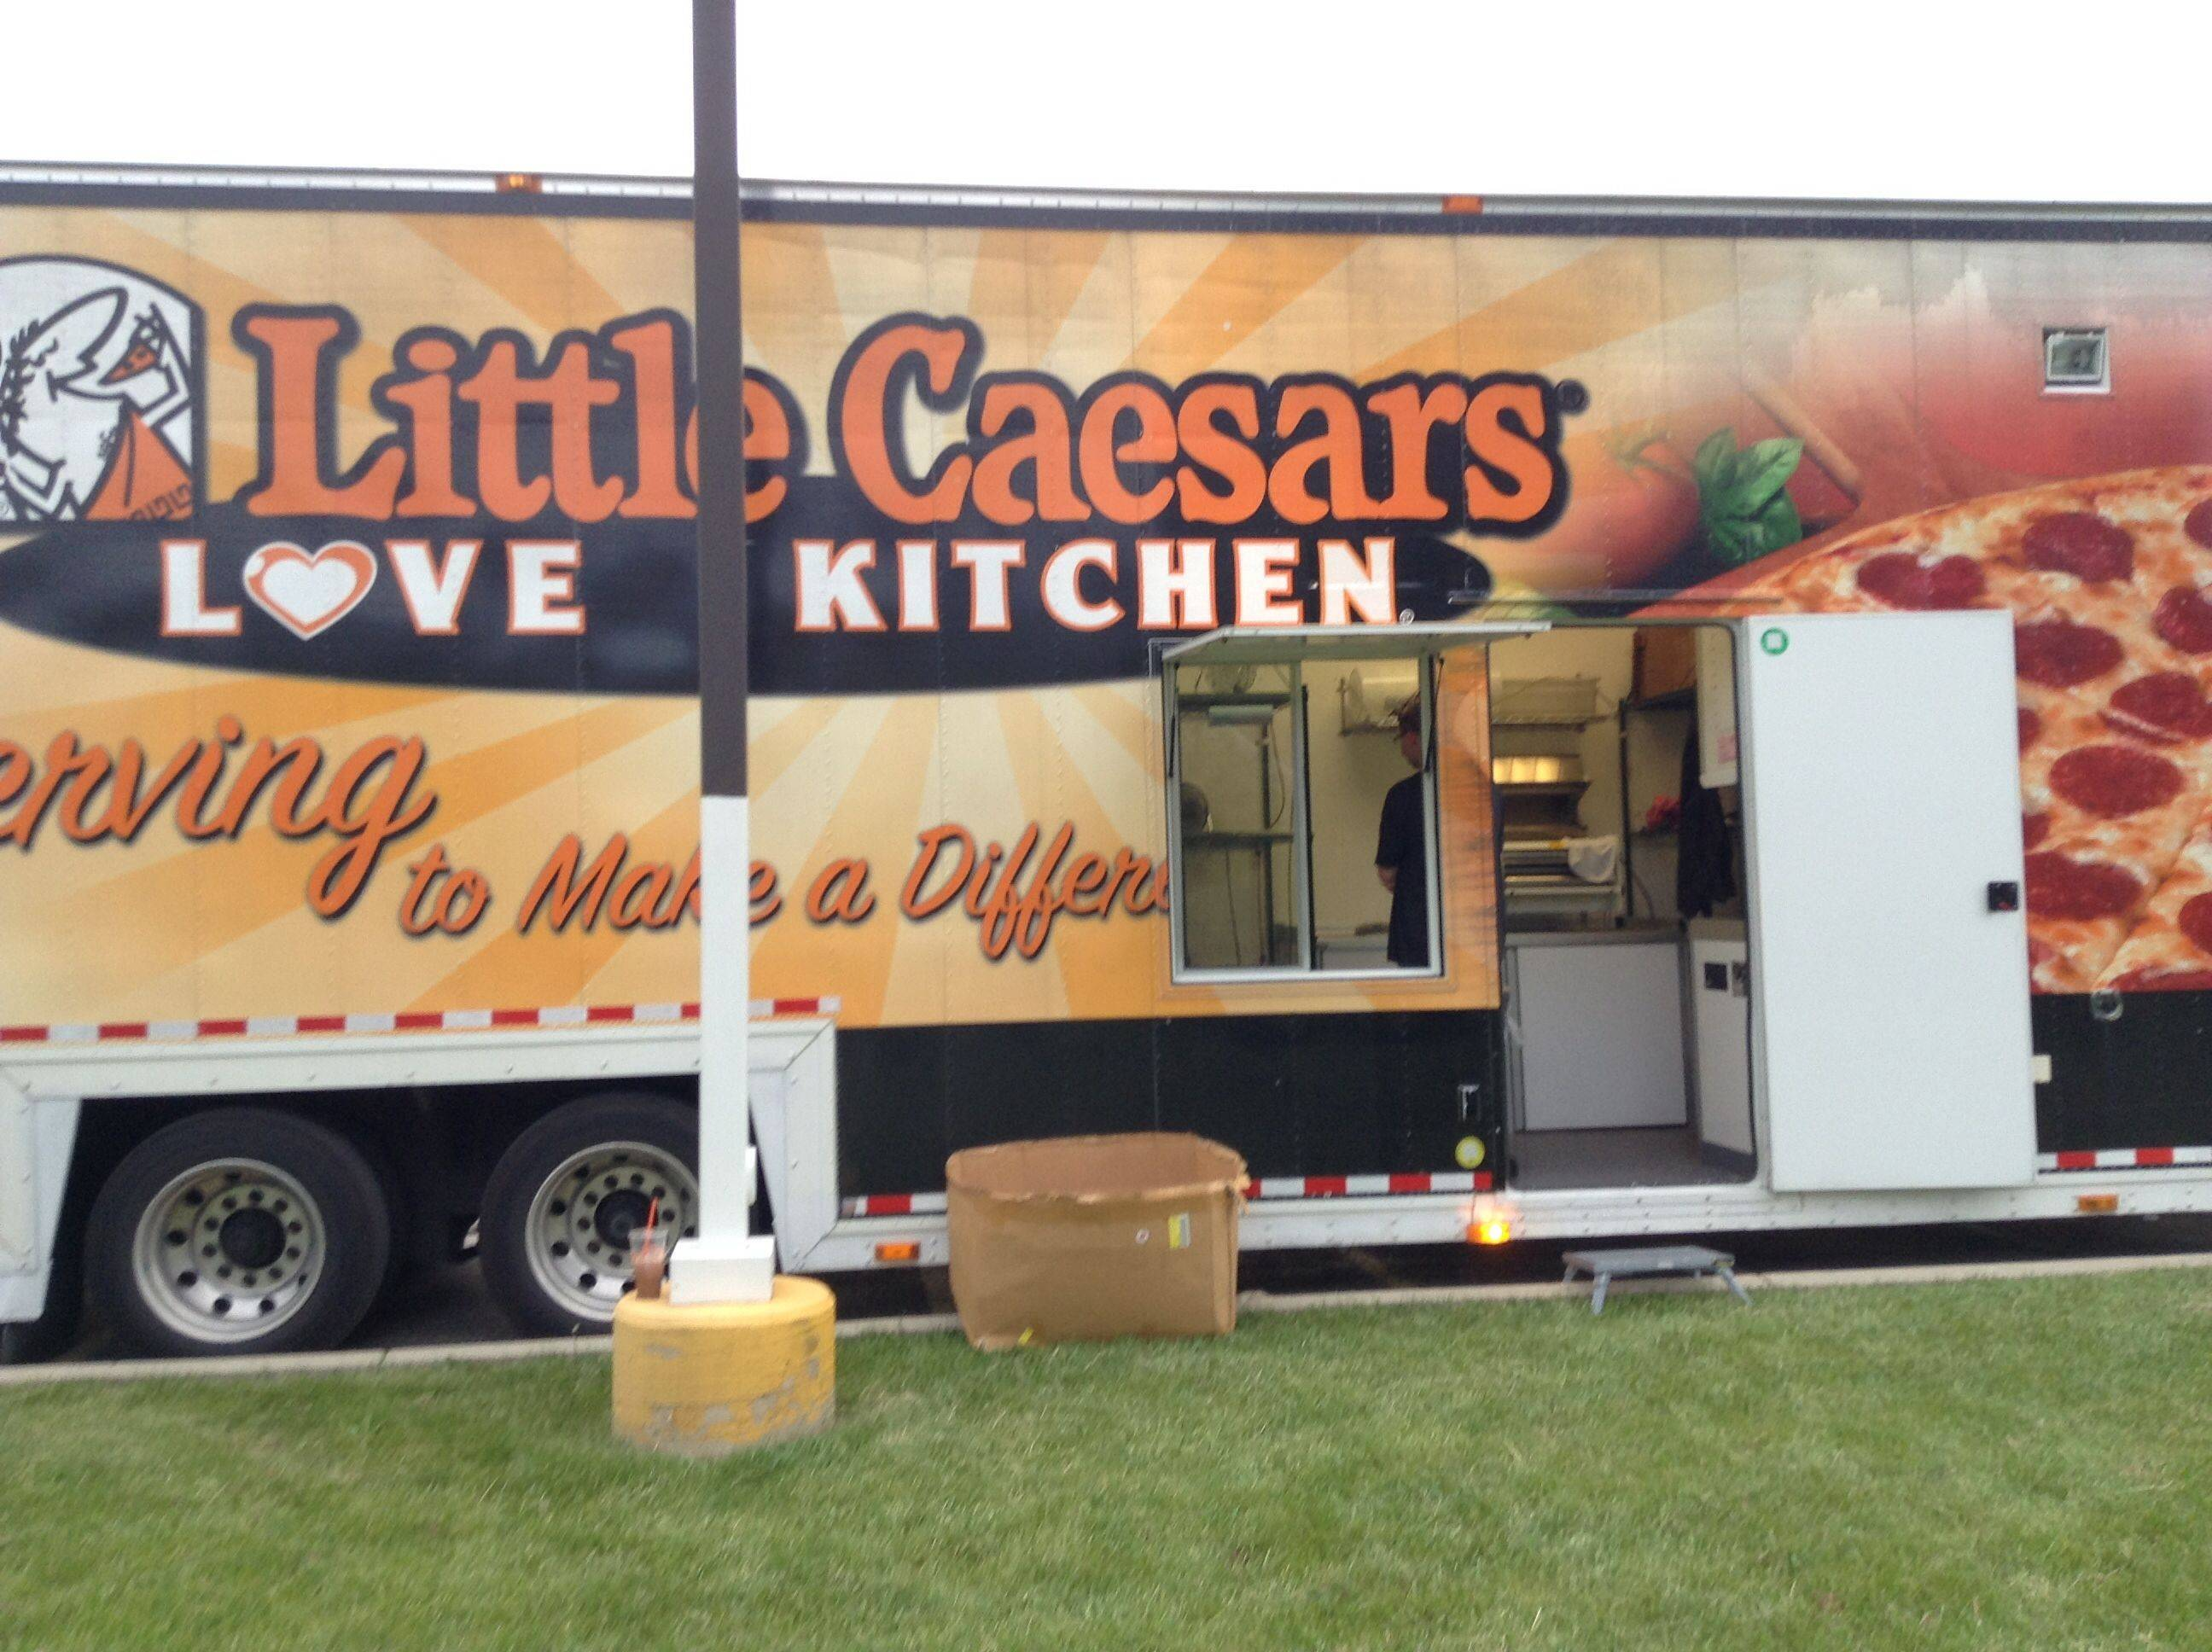 The Little Caesars Love Kitchen delivers food Sunday to Emmaus House in Lake Zurich.